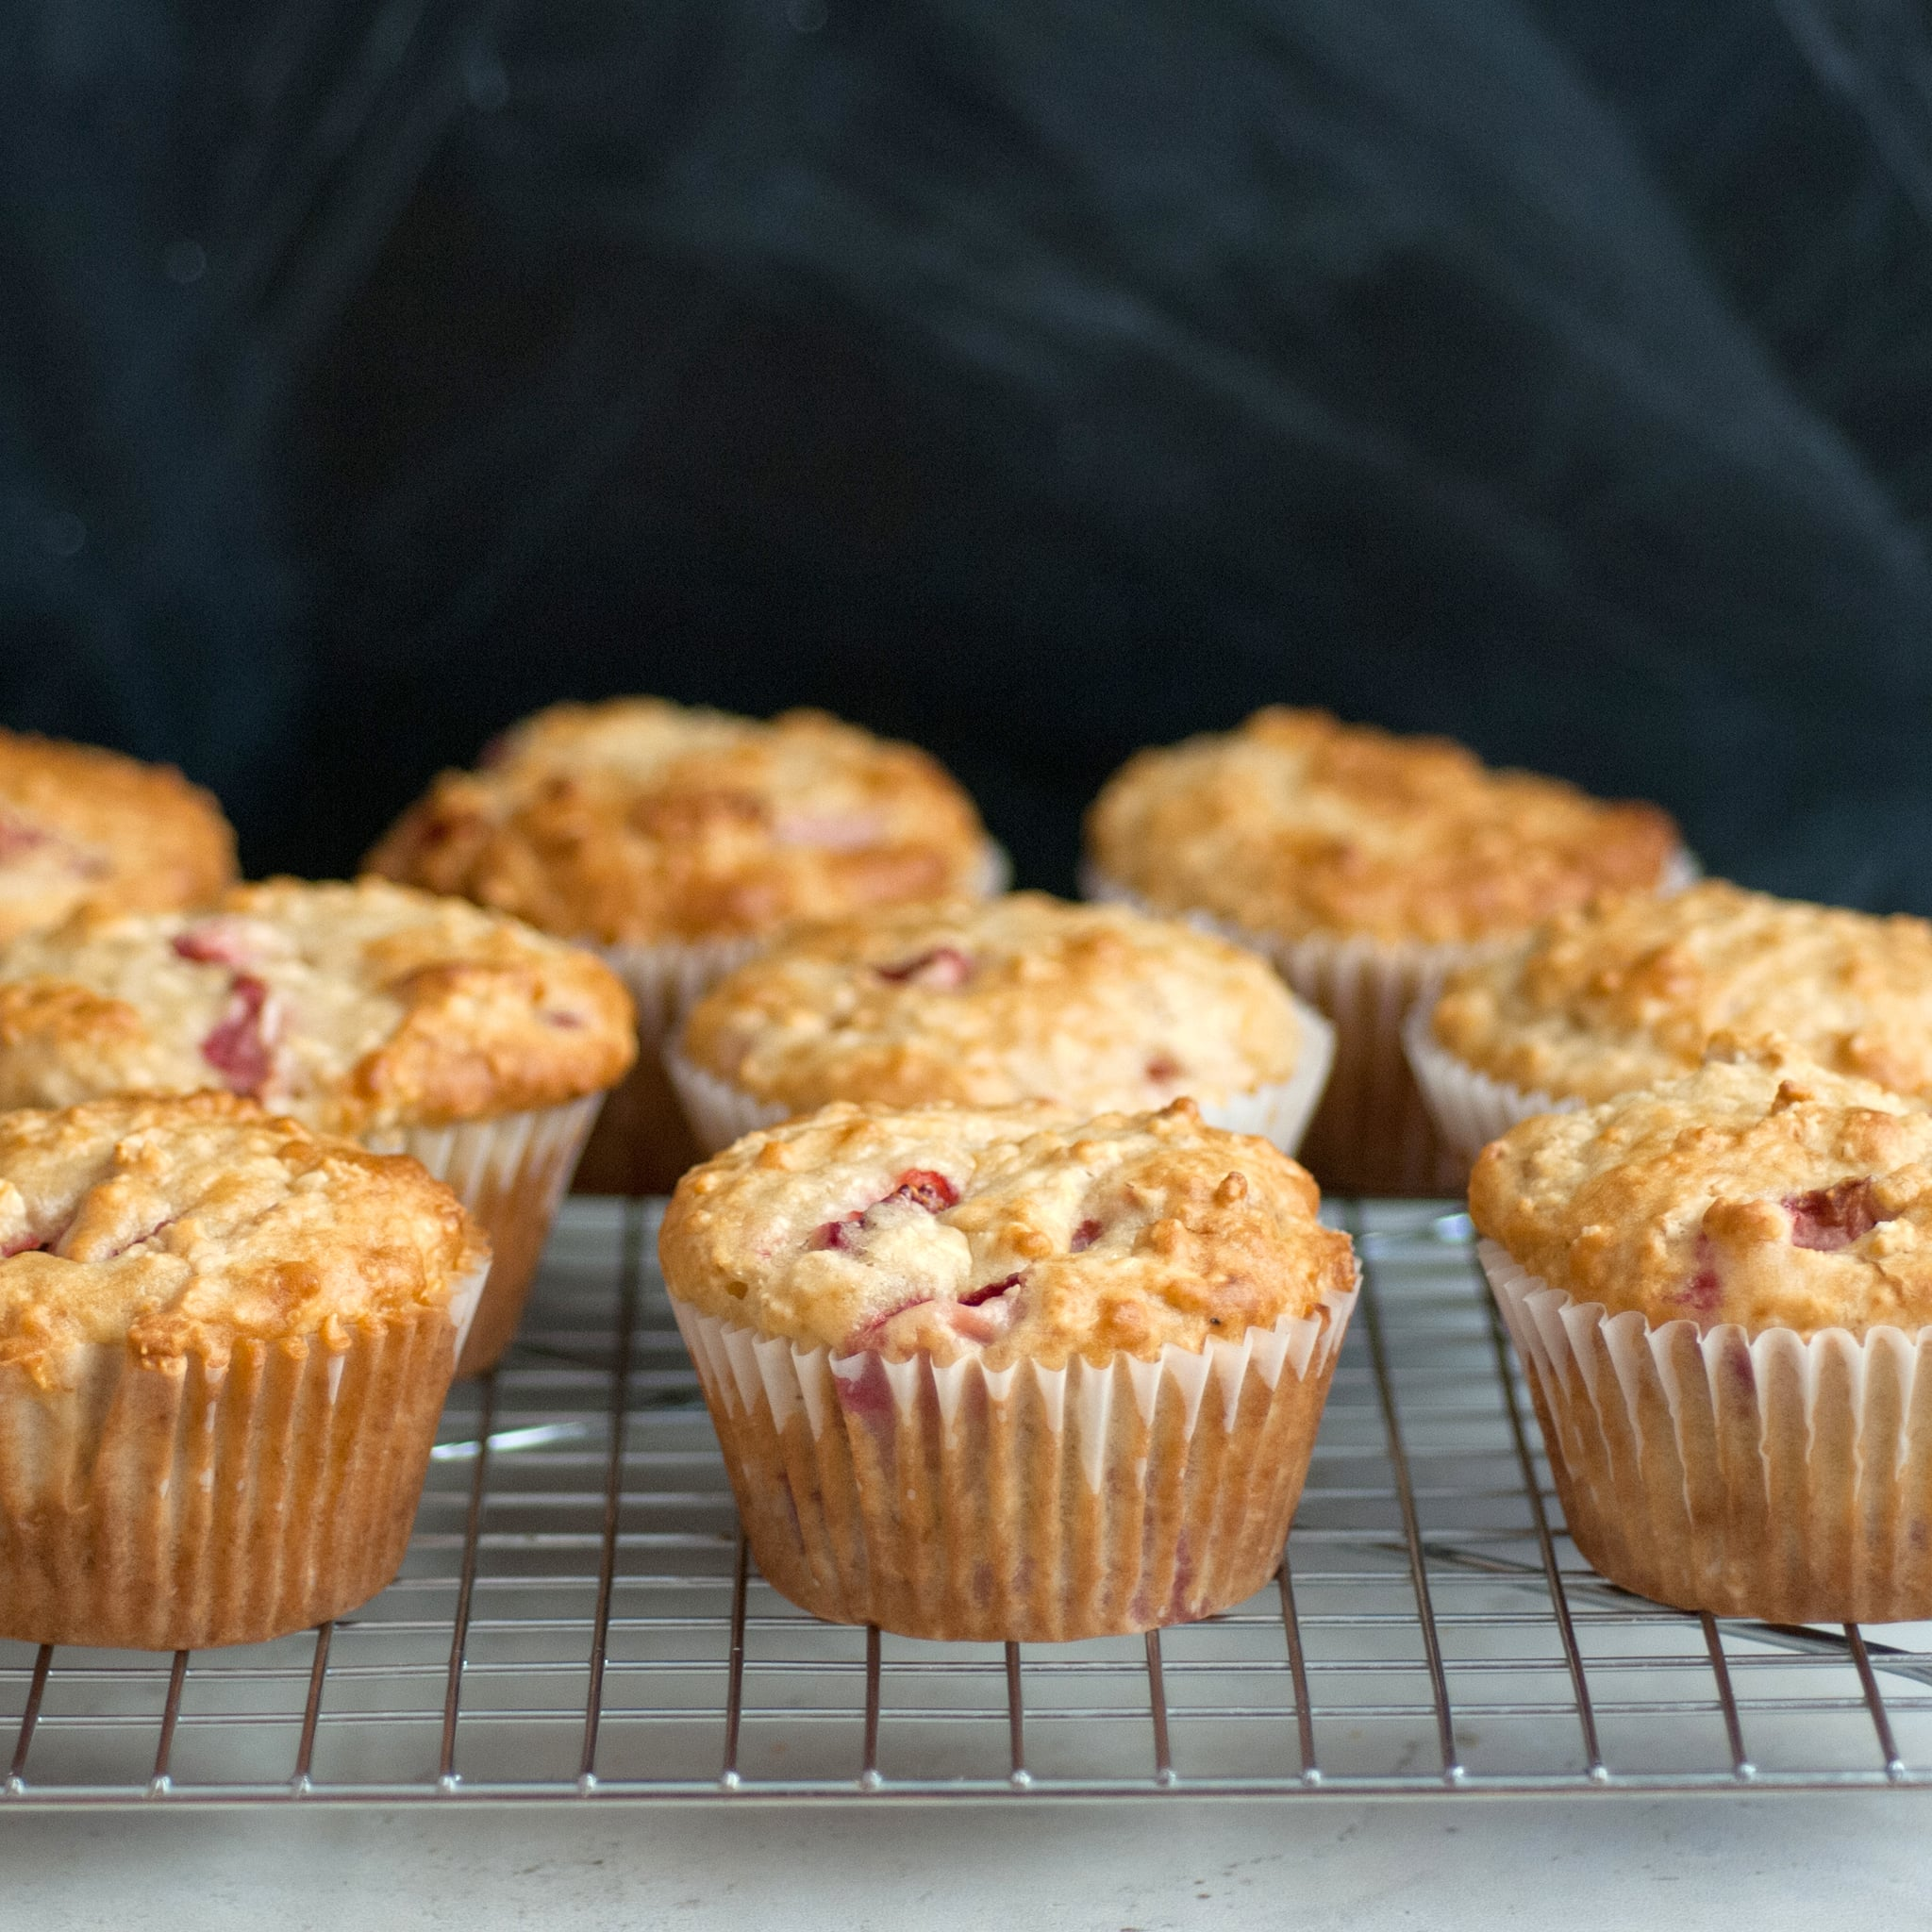 Strawberry Oatmeal Muffins the Whole Family Will Love